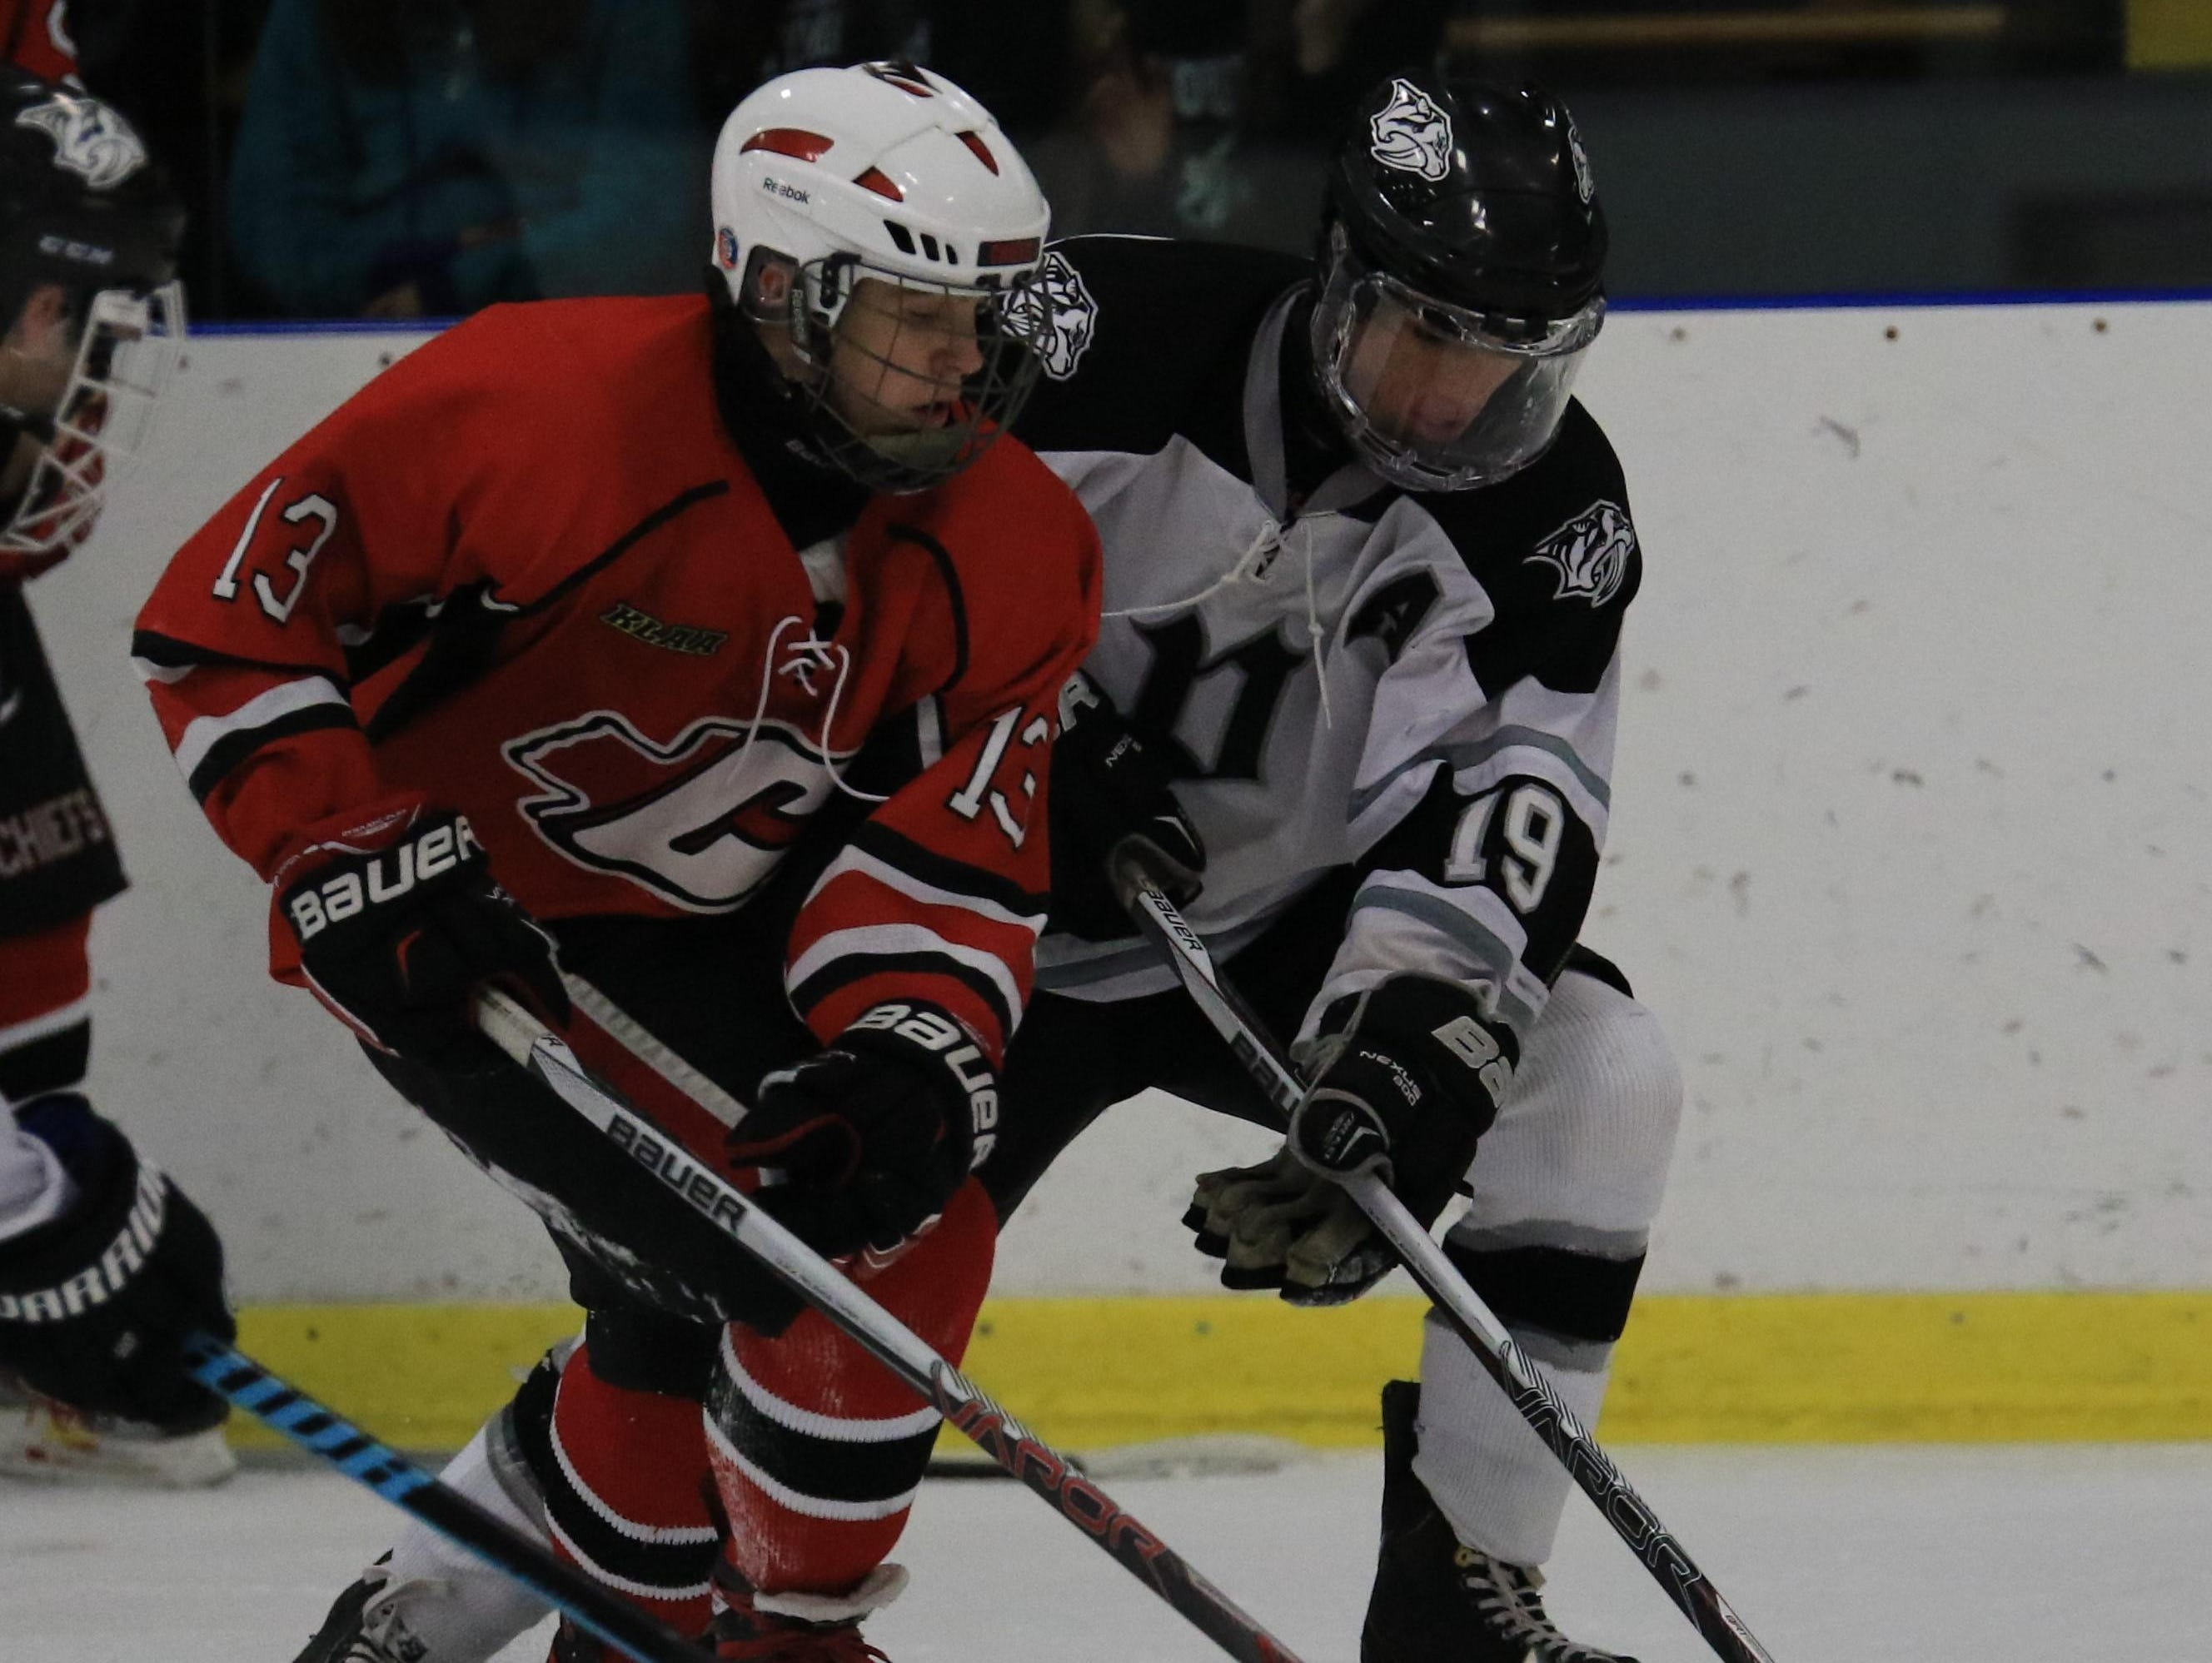 There are several promising sophomores on the Canton roster, including forward Daniel Bourgeois (No. 13).